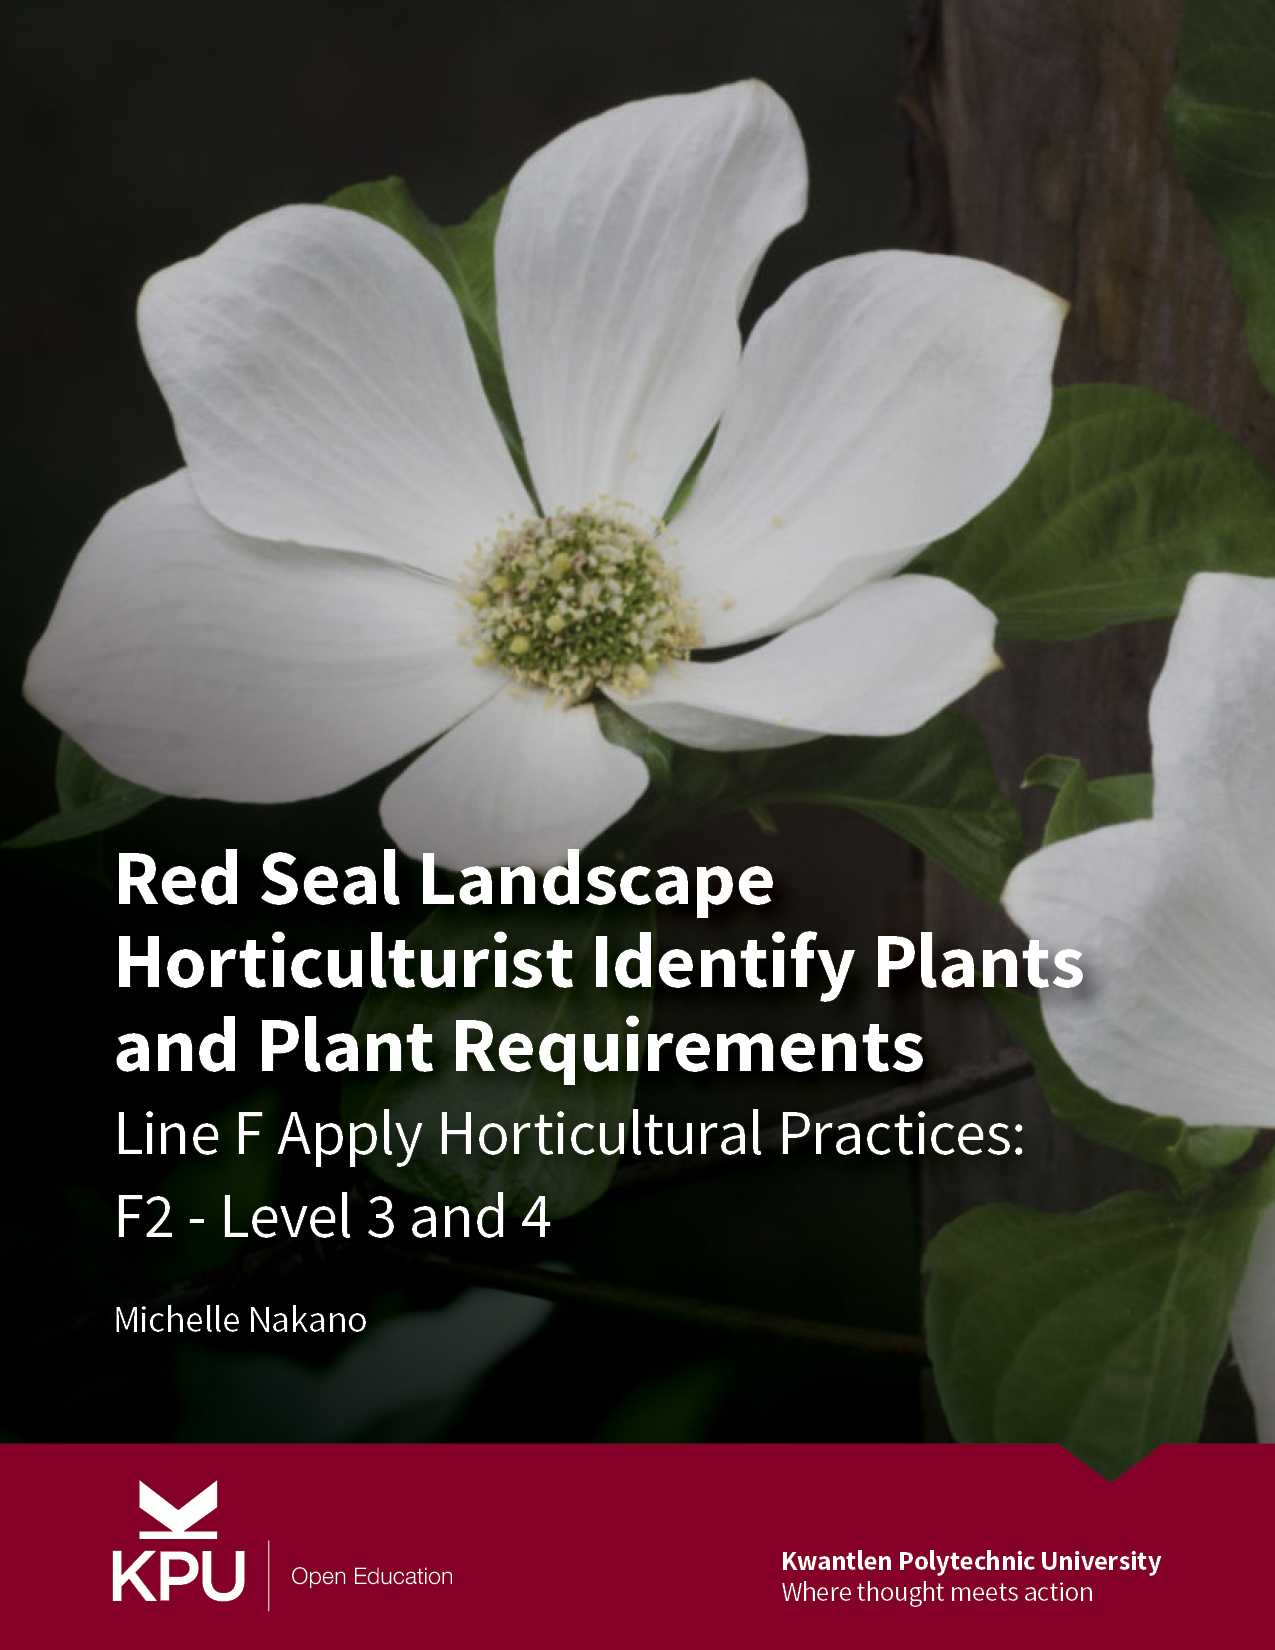 Cover image for Red Seal Landscape Horticulturist Identify Plants and Plant Requirements (F2 - 3&4)